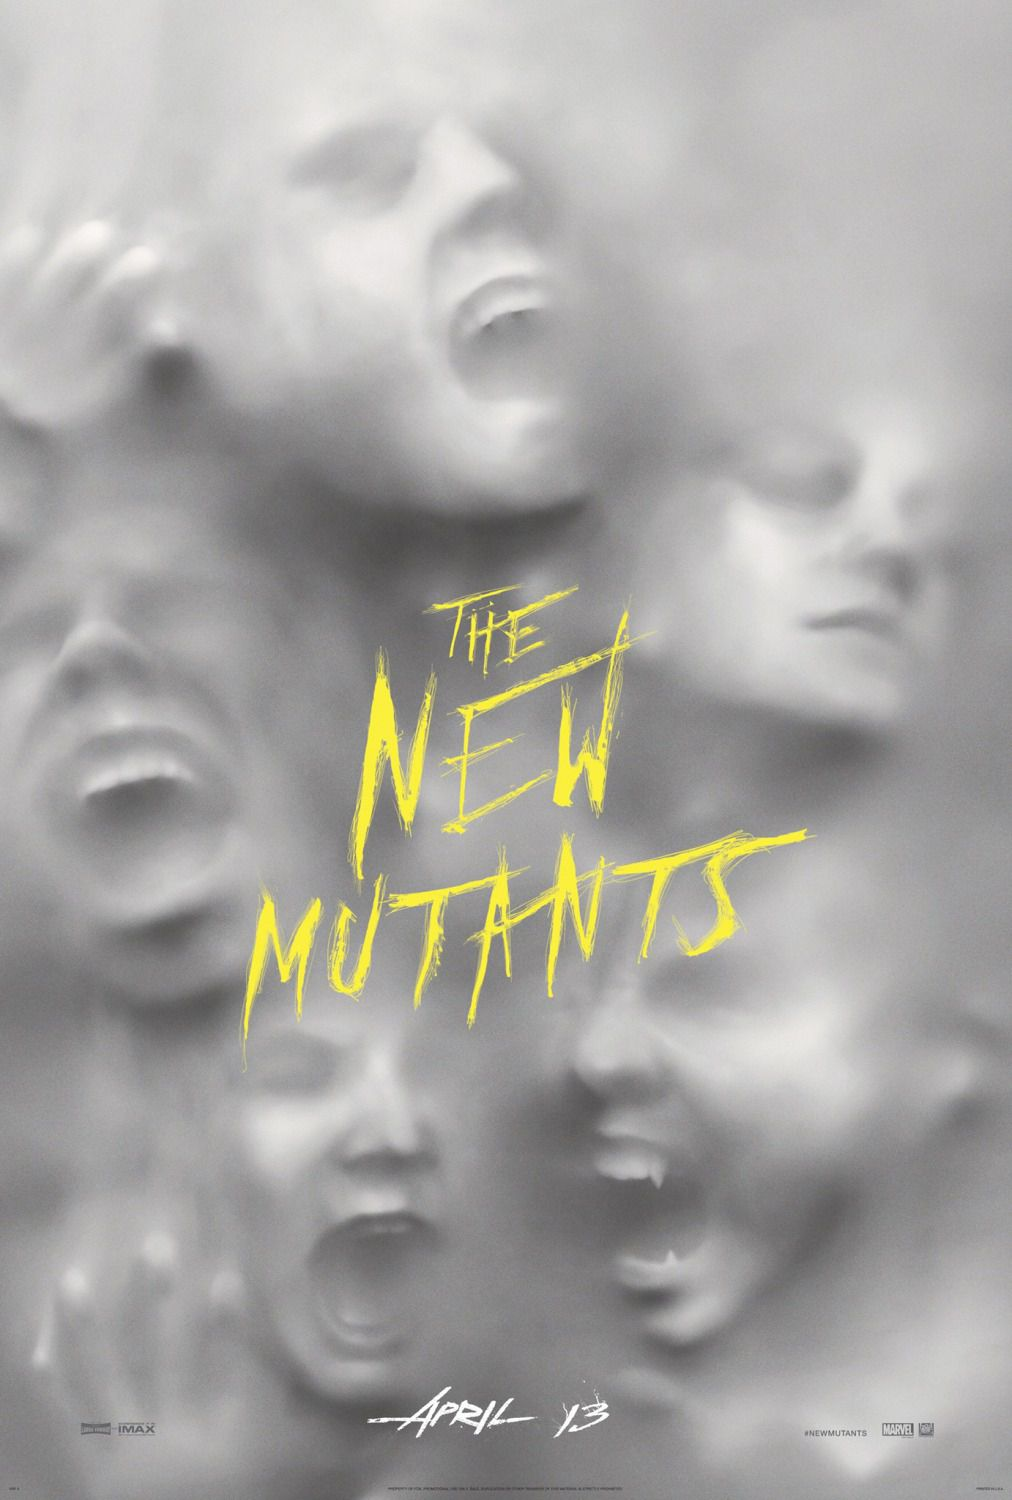 New Mutants by Josh Boone - Anya Taylor-Joy, Maisie Williams, Charlie Heaton, Blu Hunt - X-Men poster